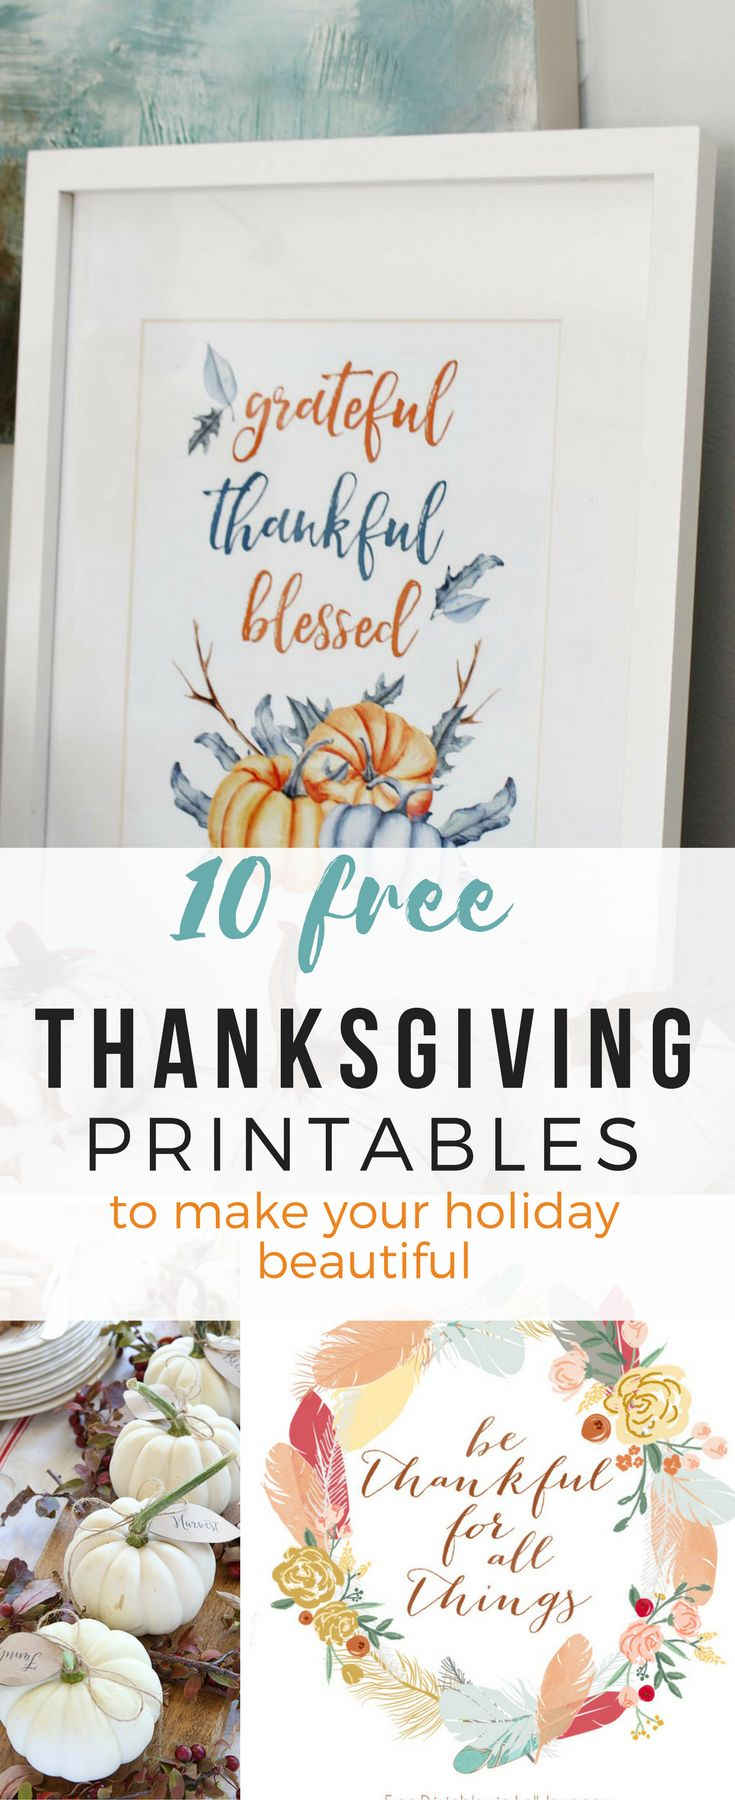 These are beautiful printables I can't wait to print and use at my table this year!